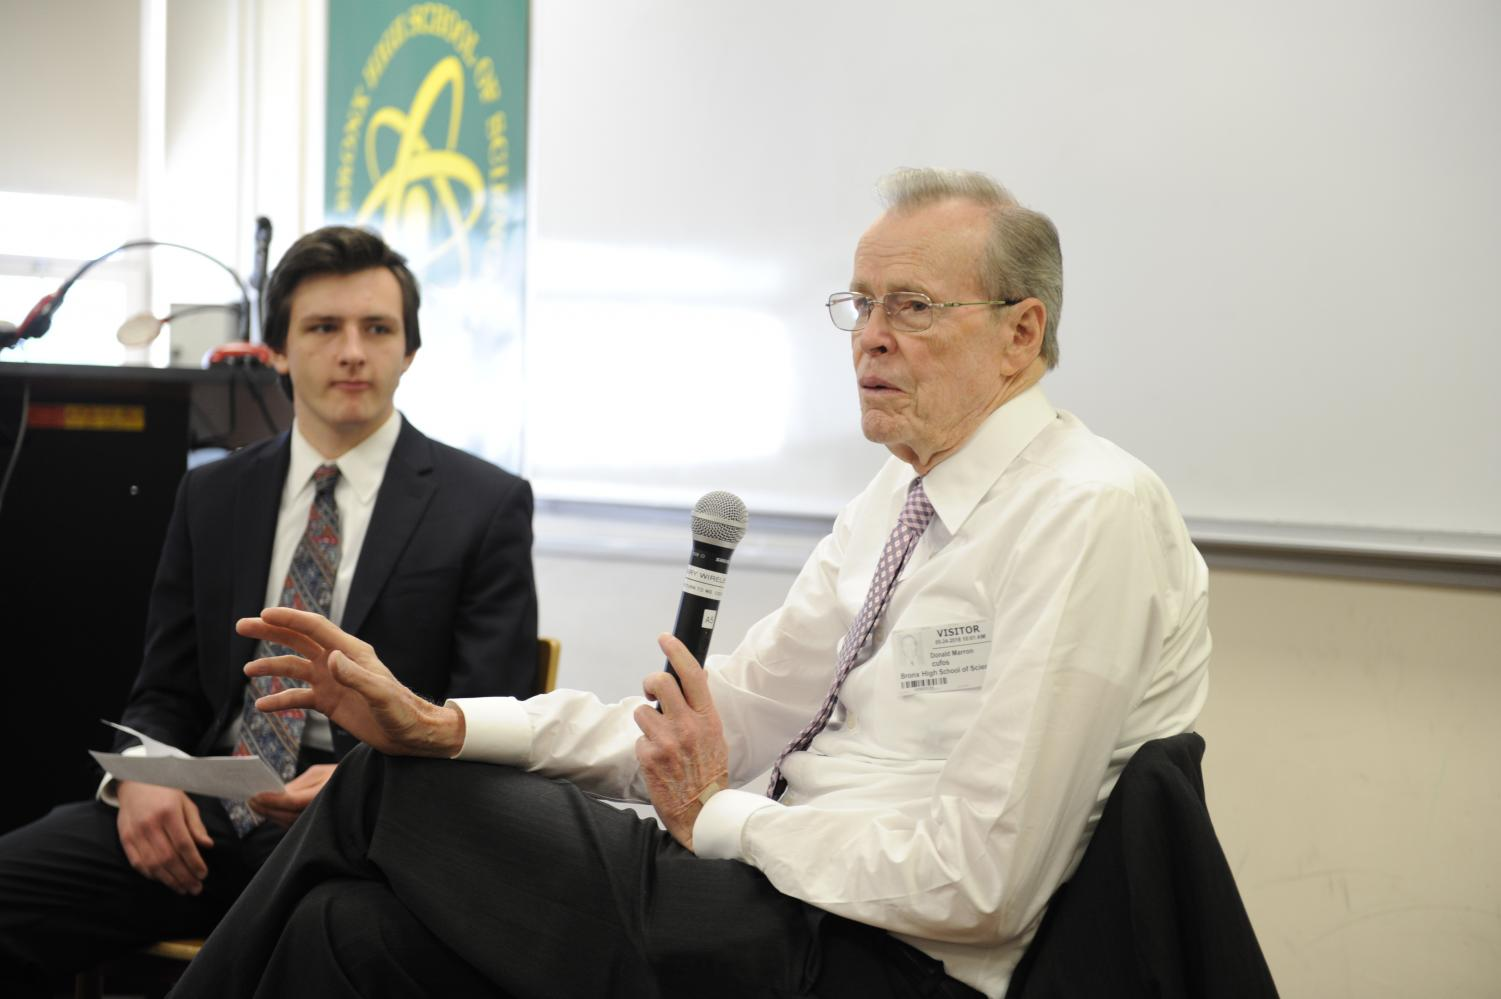 Donald Marron discusses his life and work with student interviewer Max Porlein '18.